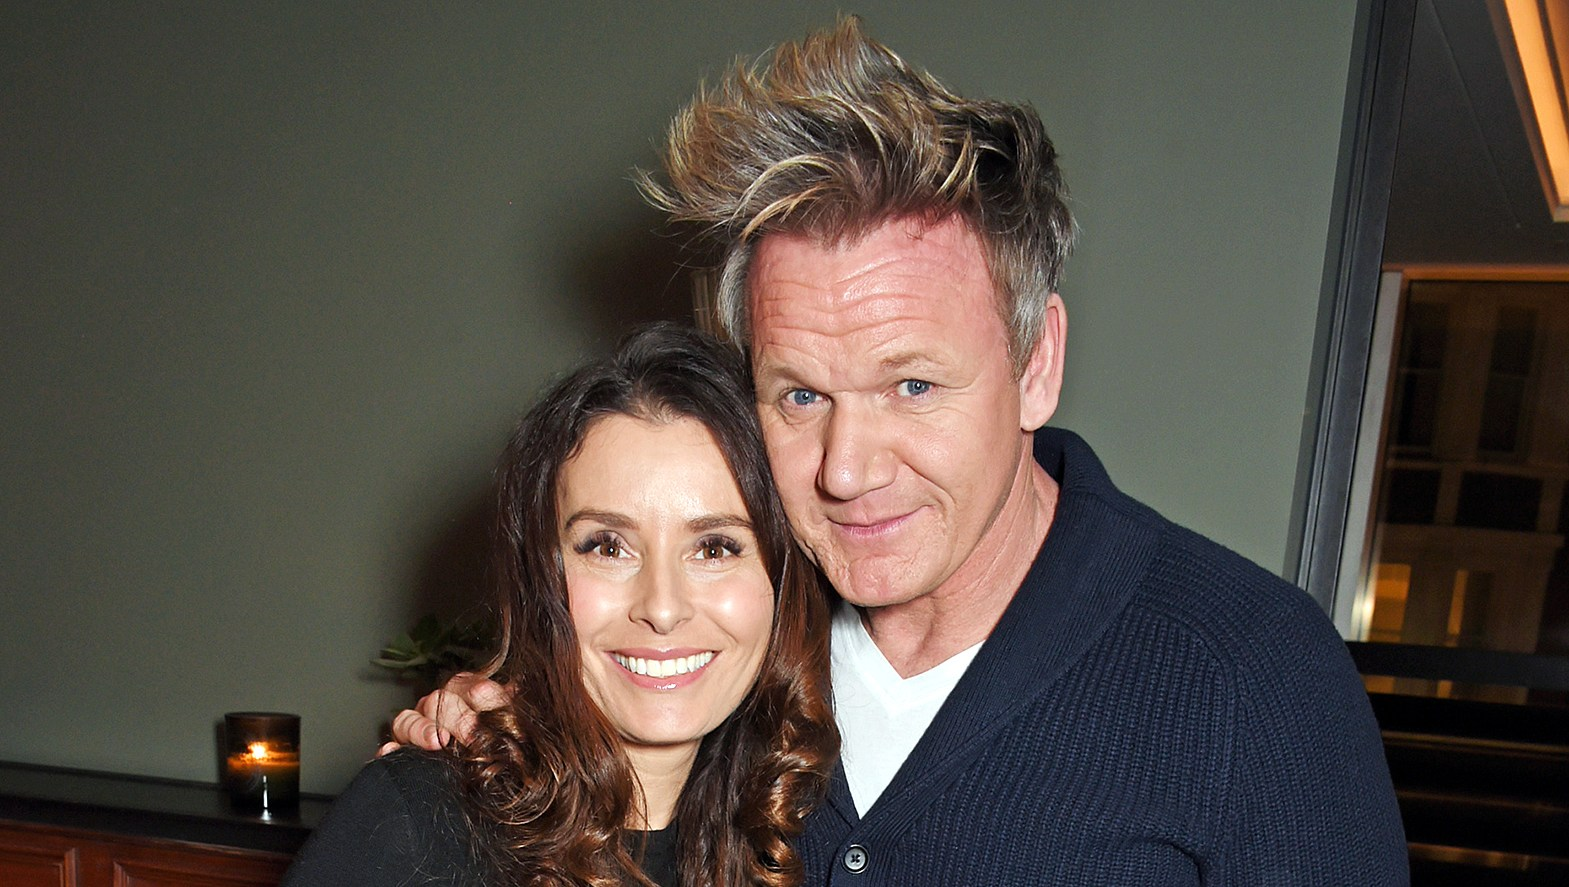 Gordon Ramsay lost weight to save marriage